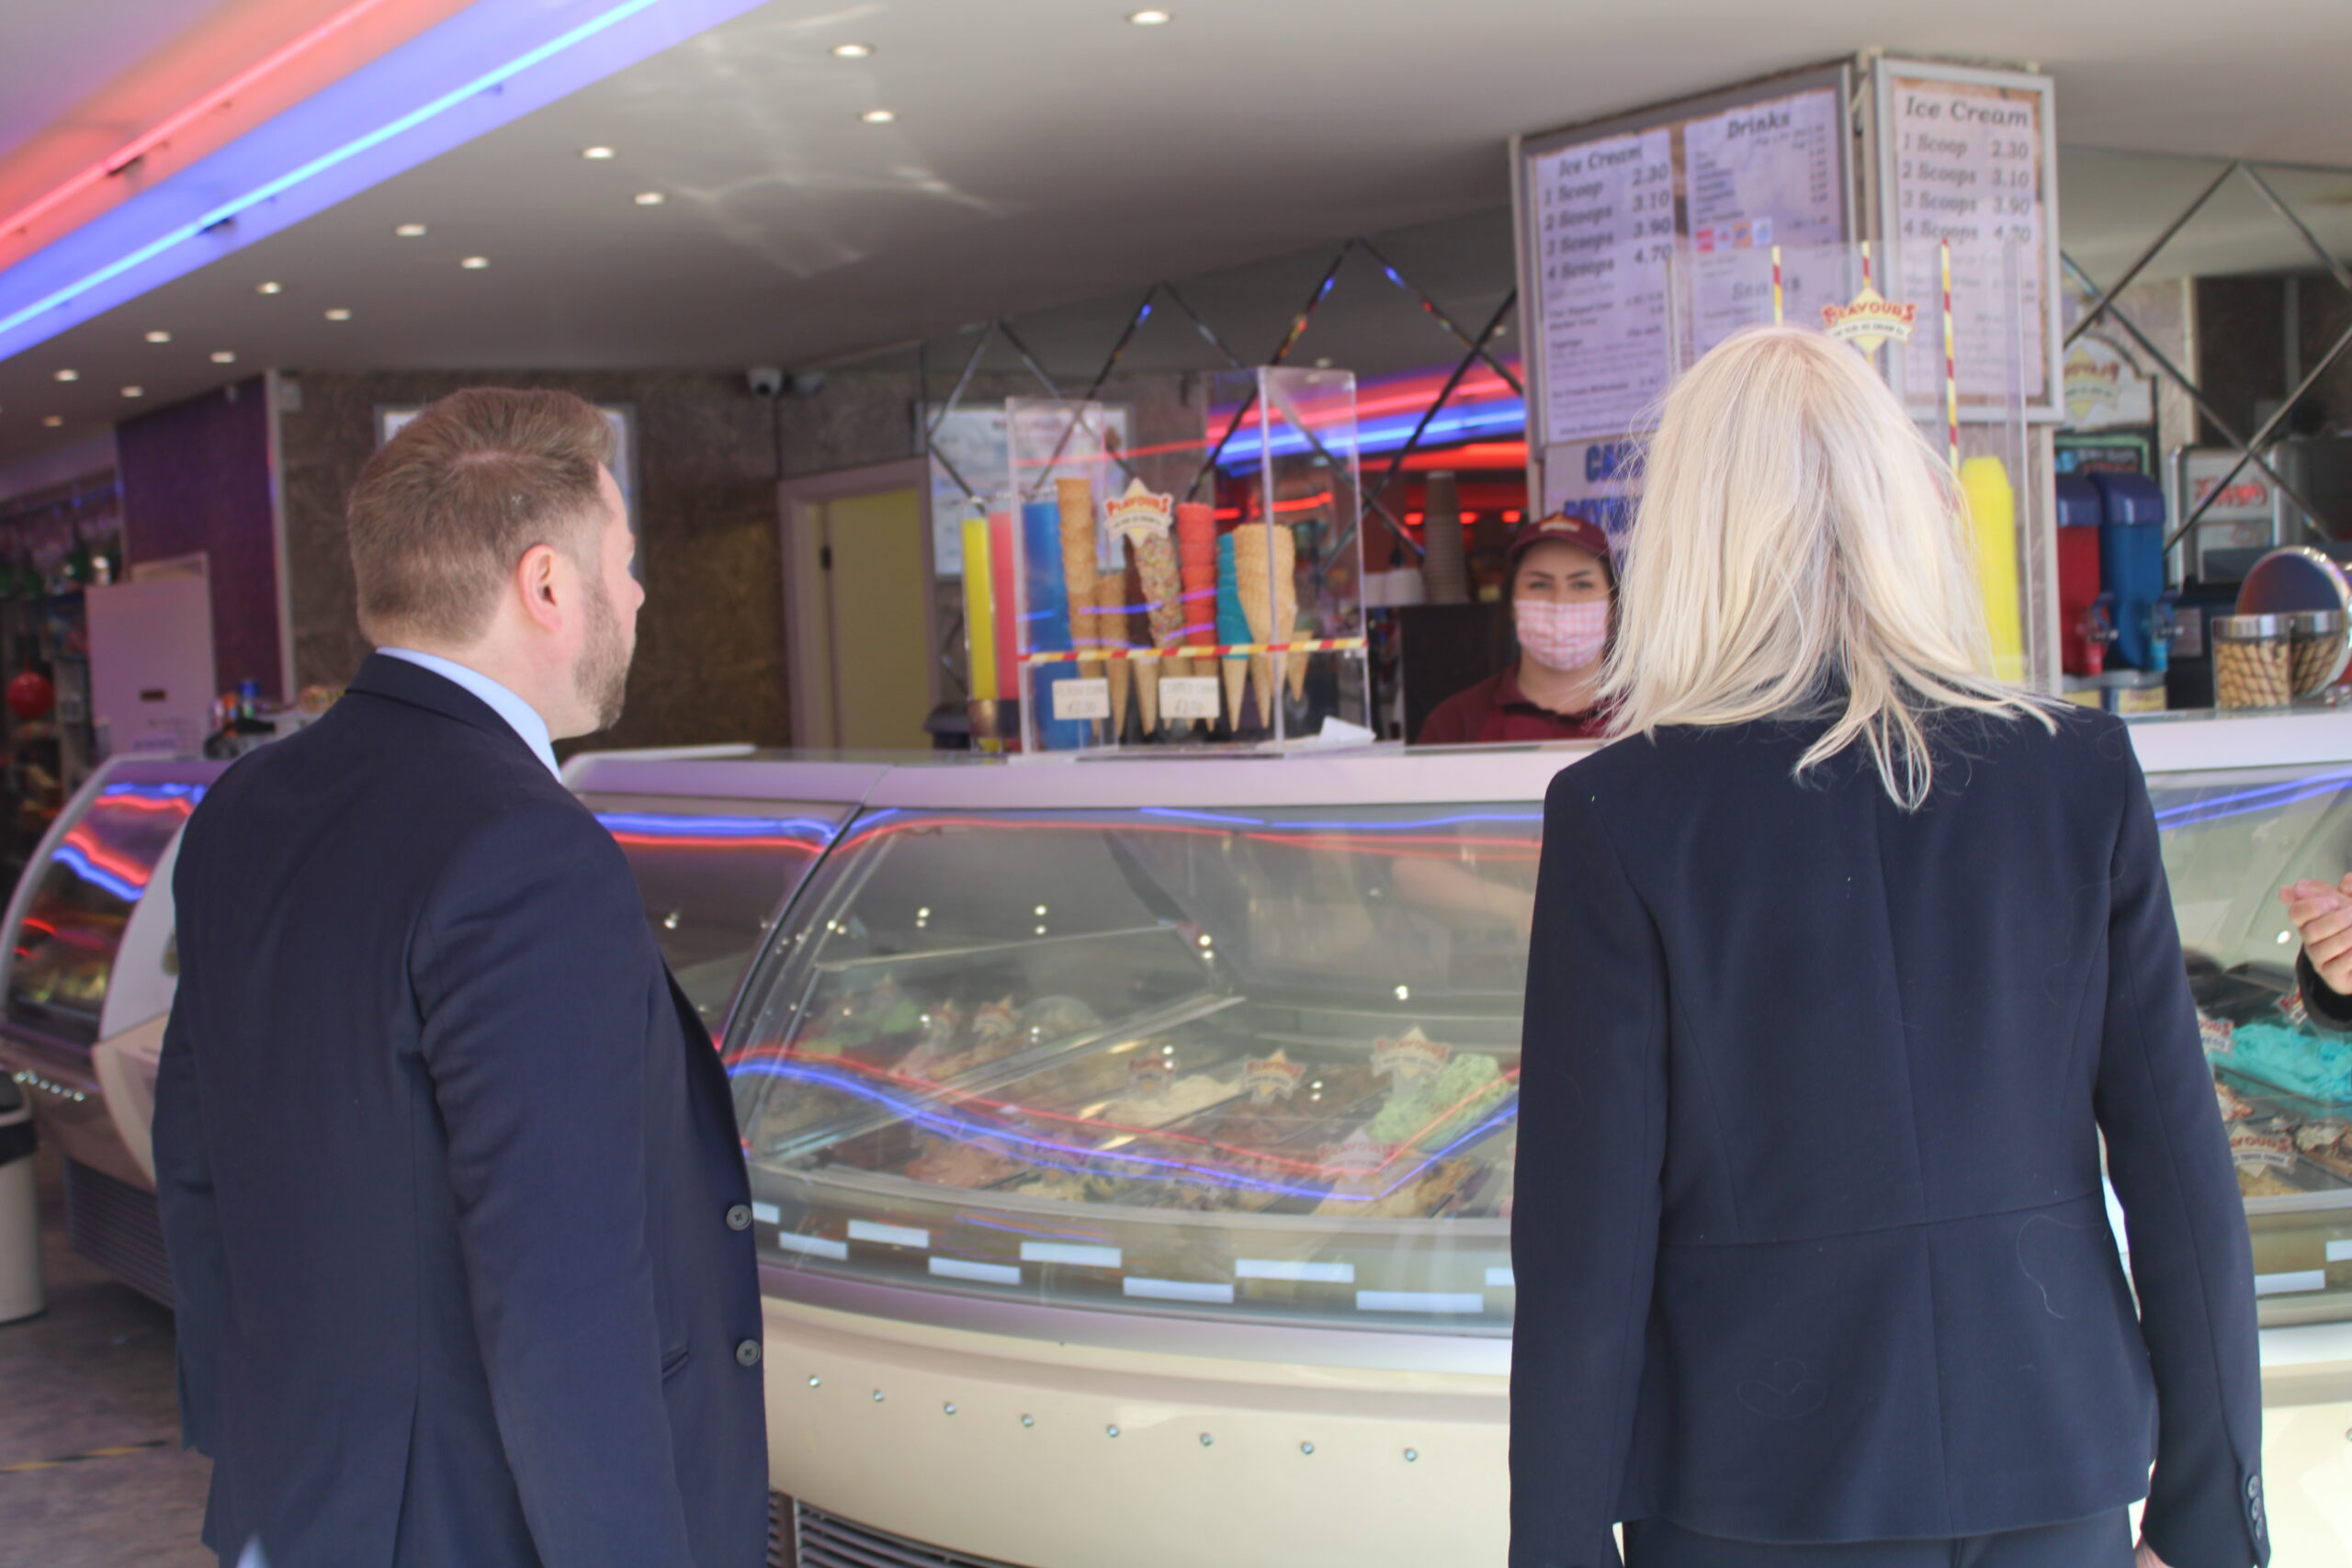 Conservative Party Co-Chairman Amanda Milling MP enjoyed a visit to Silcock's Funland and Silcock's Flavours Ice Cream Parlour in Southport. The MP was welcomed by Southport MP Damien Moore, Sefton Council Conservative Group leader Cllr Tony Brough and Herbert Silcock and his family